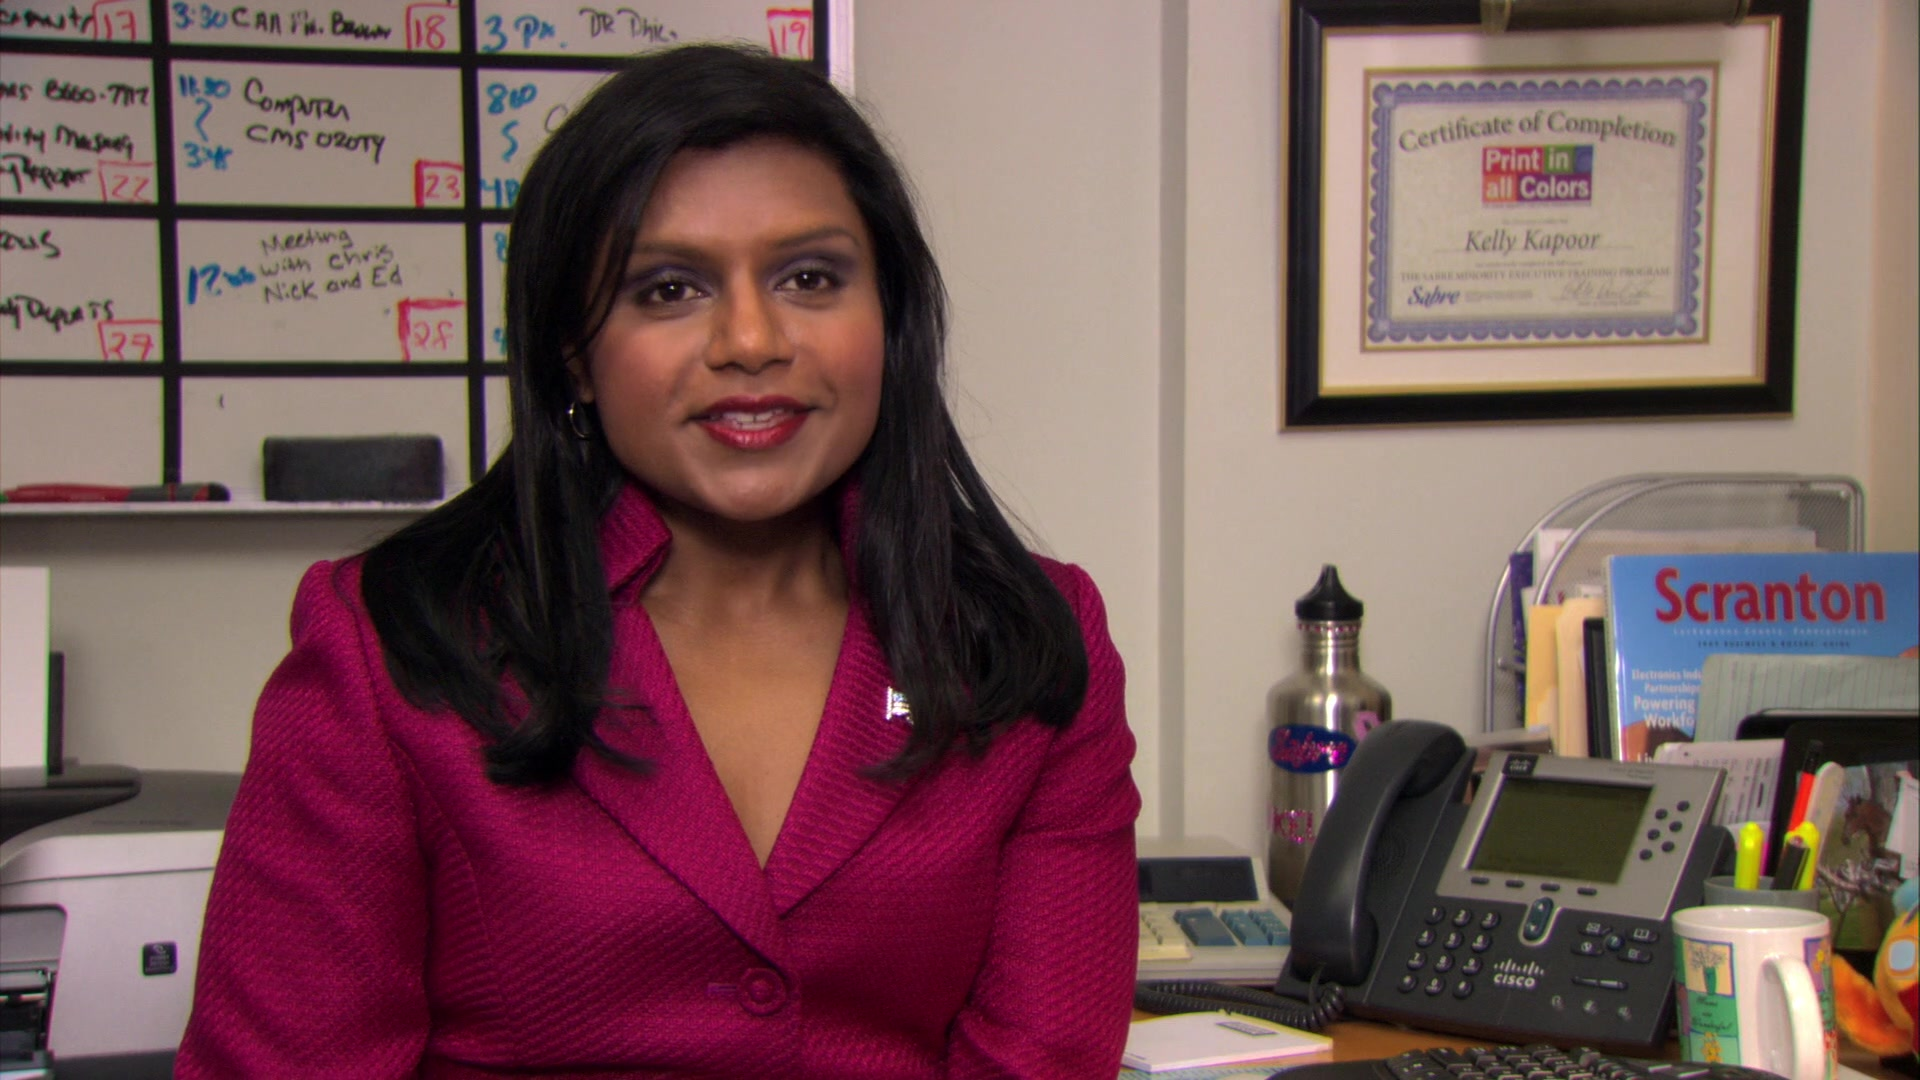 Cisco Phone Used By Mindy Kaling Kelly Kapoor In The Office Season 7 Episode 1 Nepotism 2010